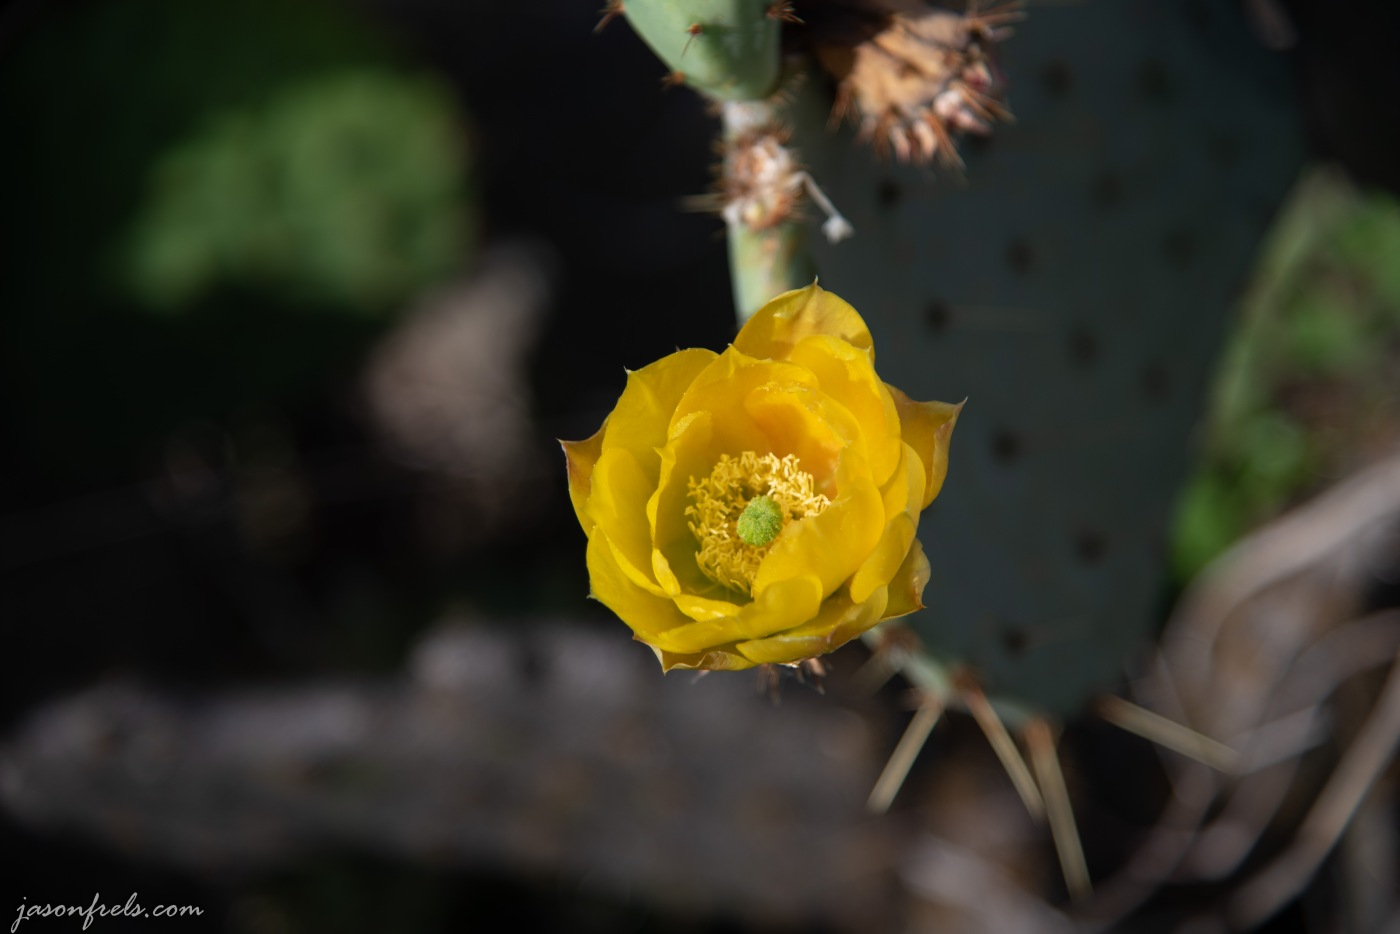 Prickly pear cactus blooms in Austin Texas